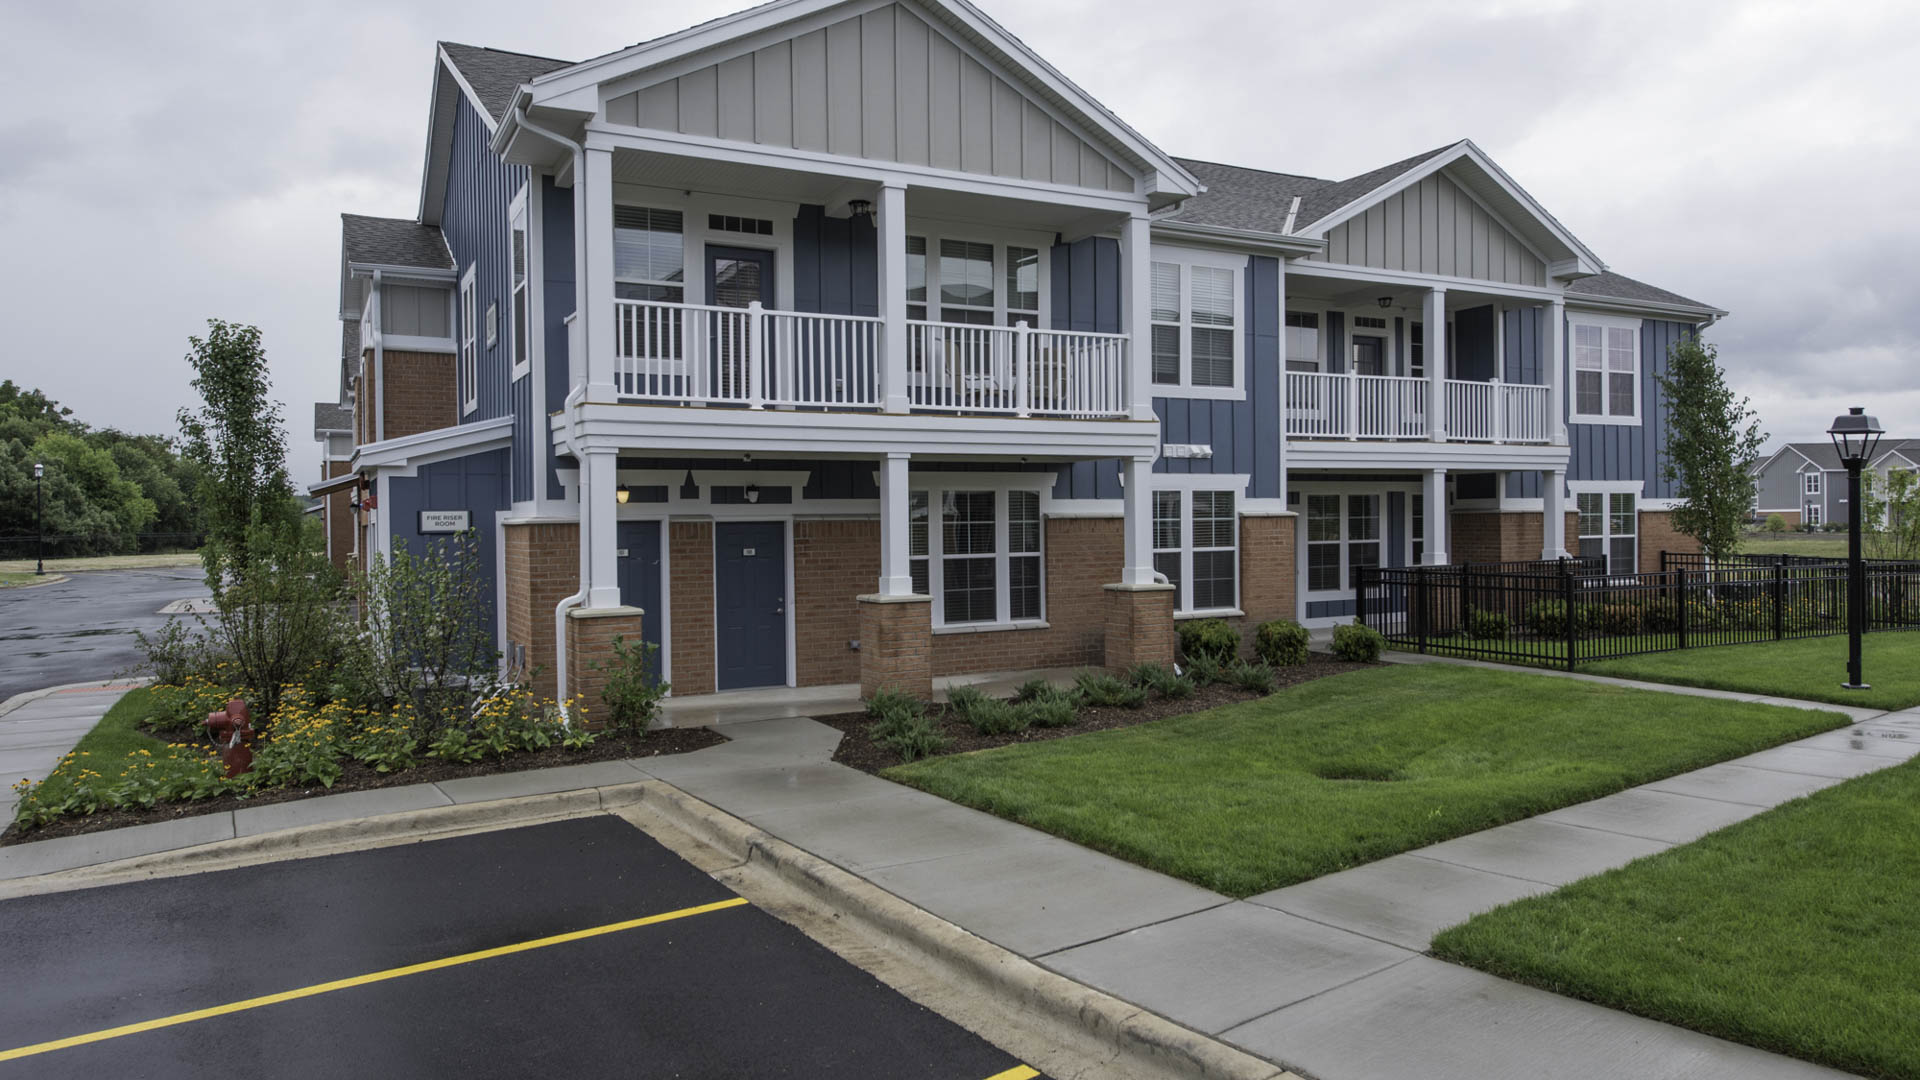 Springs at Canterfield apartment exterior and parking lot